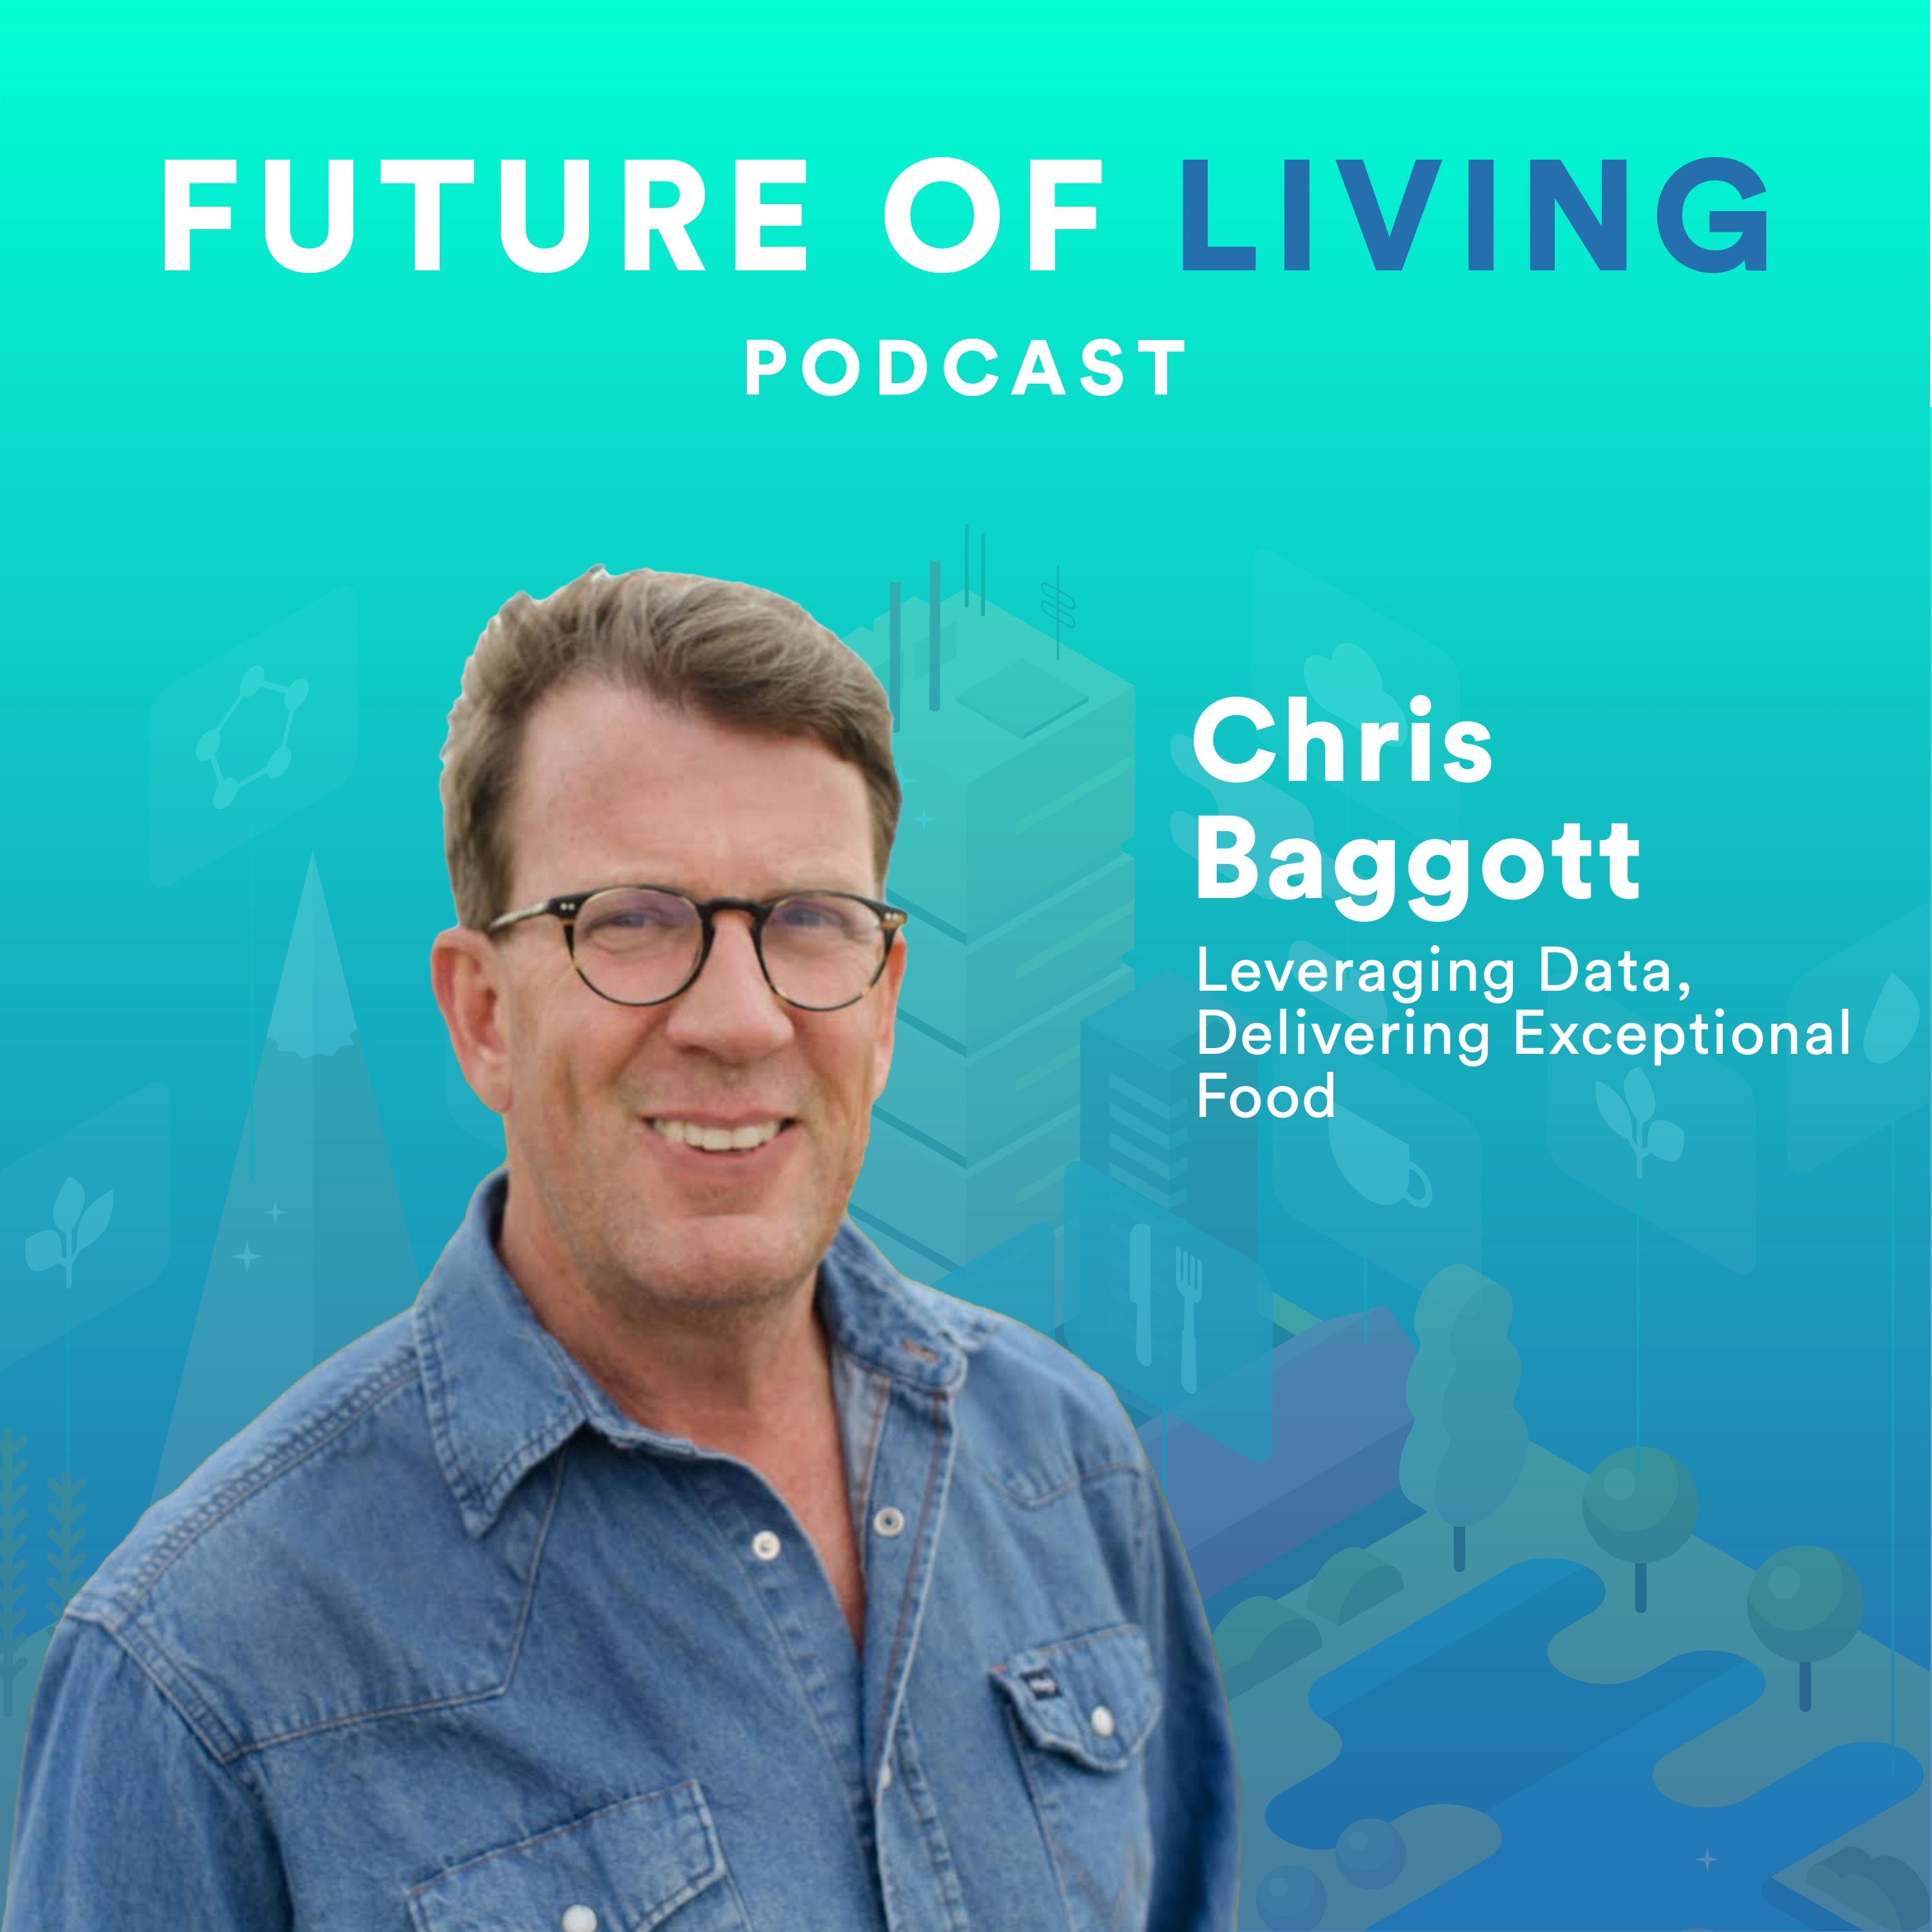 Chris Baggott – Leveraging Data, Delivering Exceptional Food